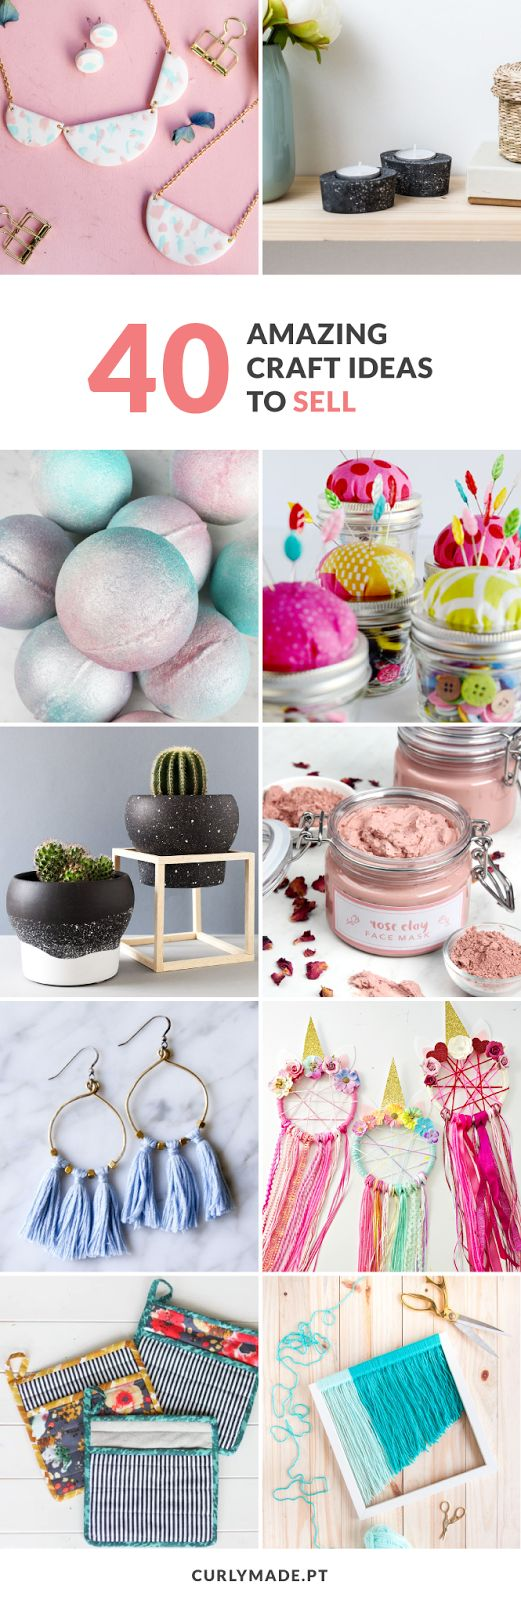 20 Amazing DIY Craft Ideas To Sell   Curly Made   Sell diy, Craft ...